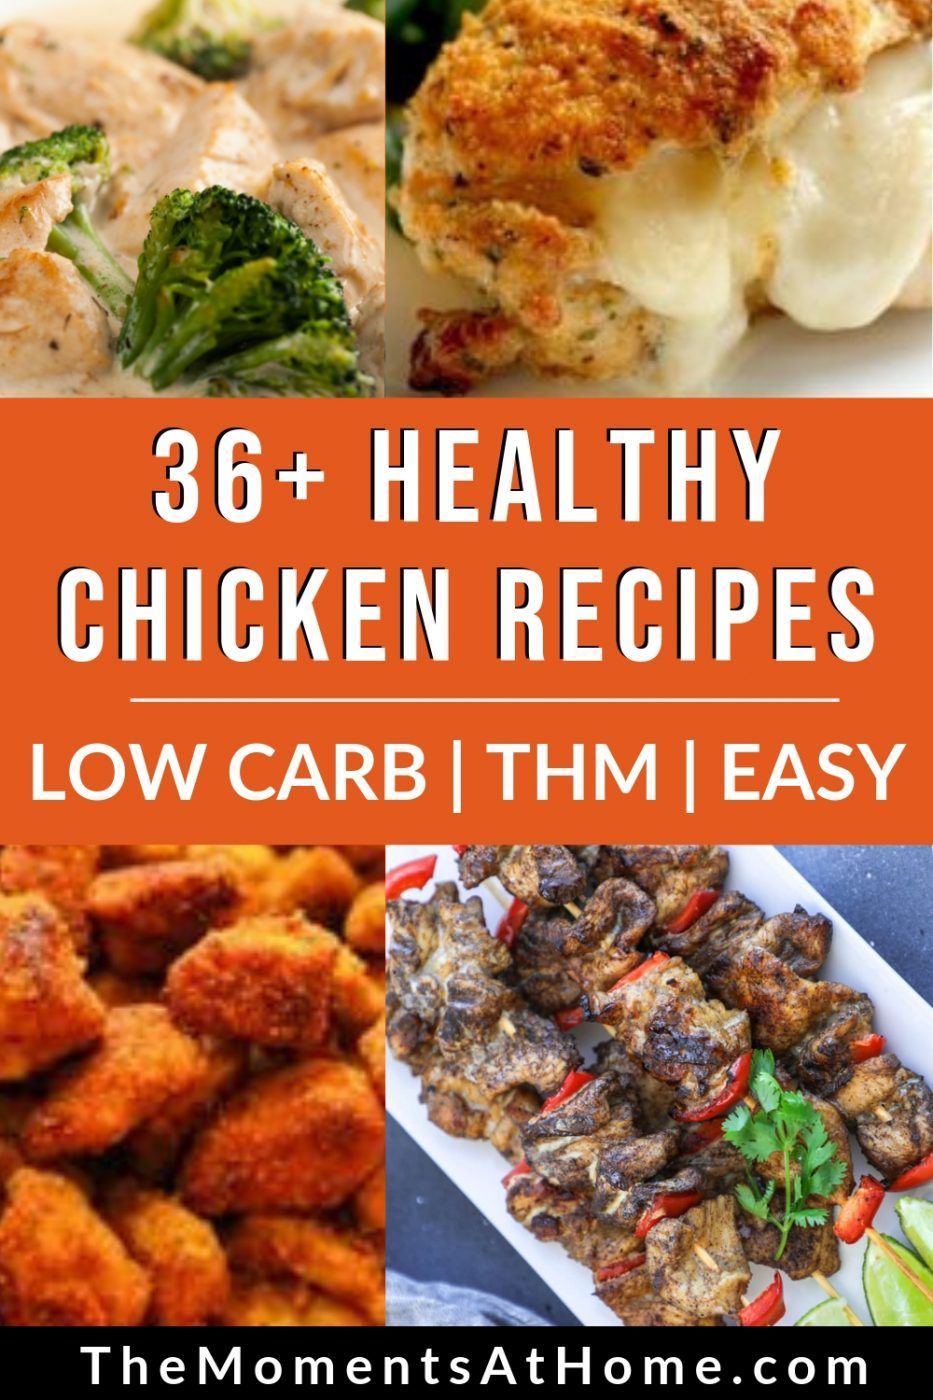 Healthy Chicken Dinner Recipes More Than 3 Dozen To Choose From With Images Healthy Chicken Recipes Healthy Chicken Dinner Dinner Recipes Healthy Low Carb